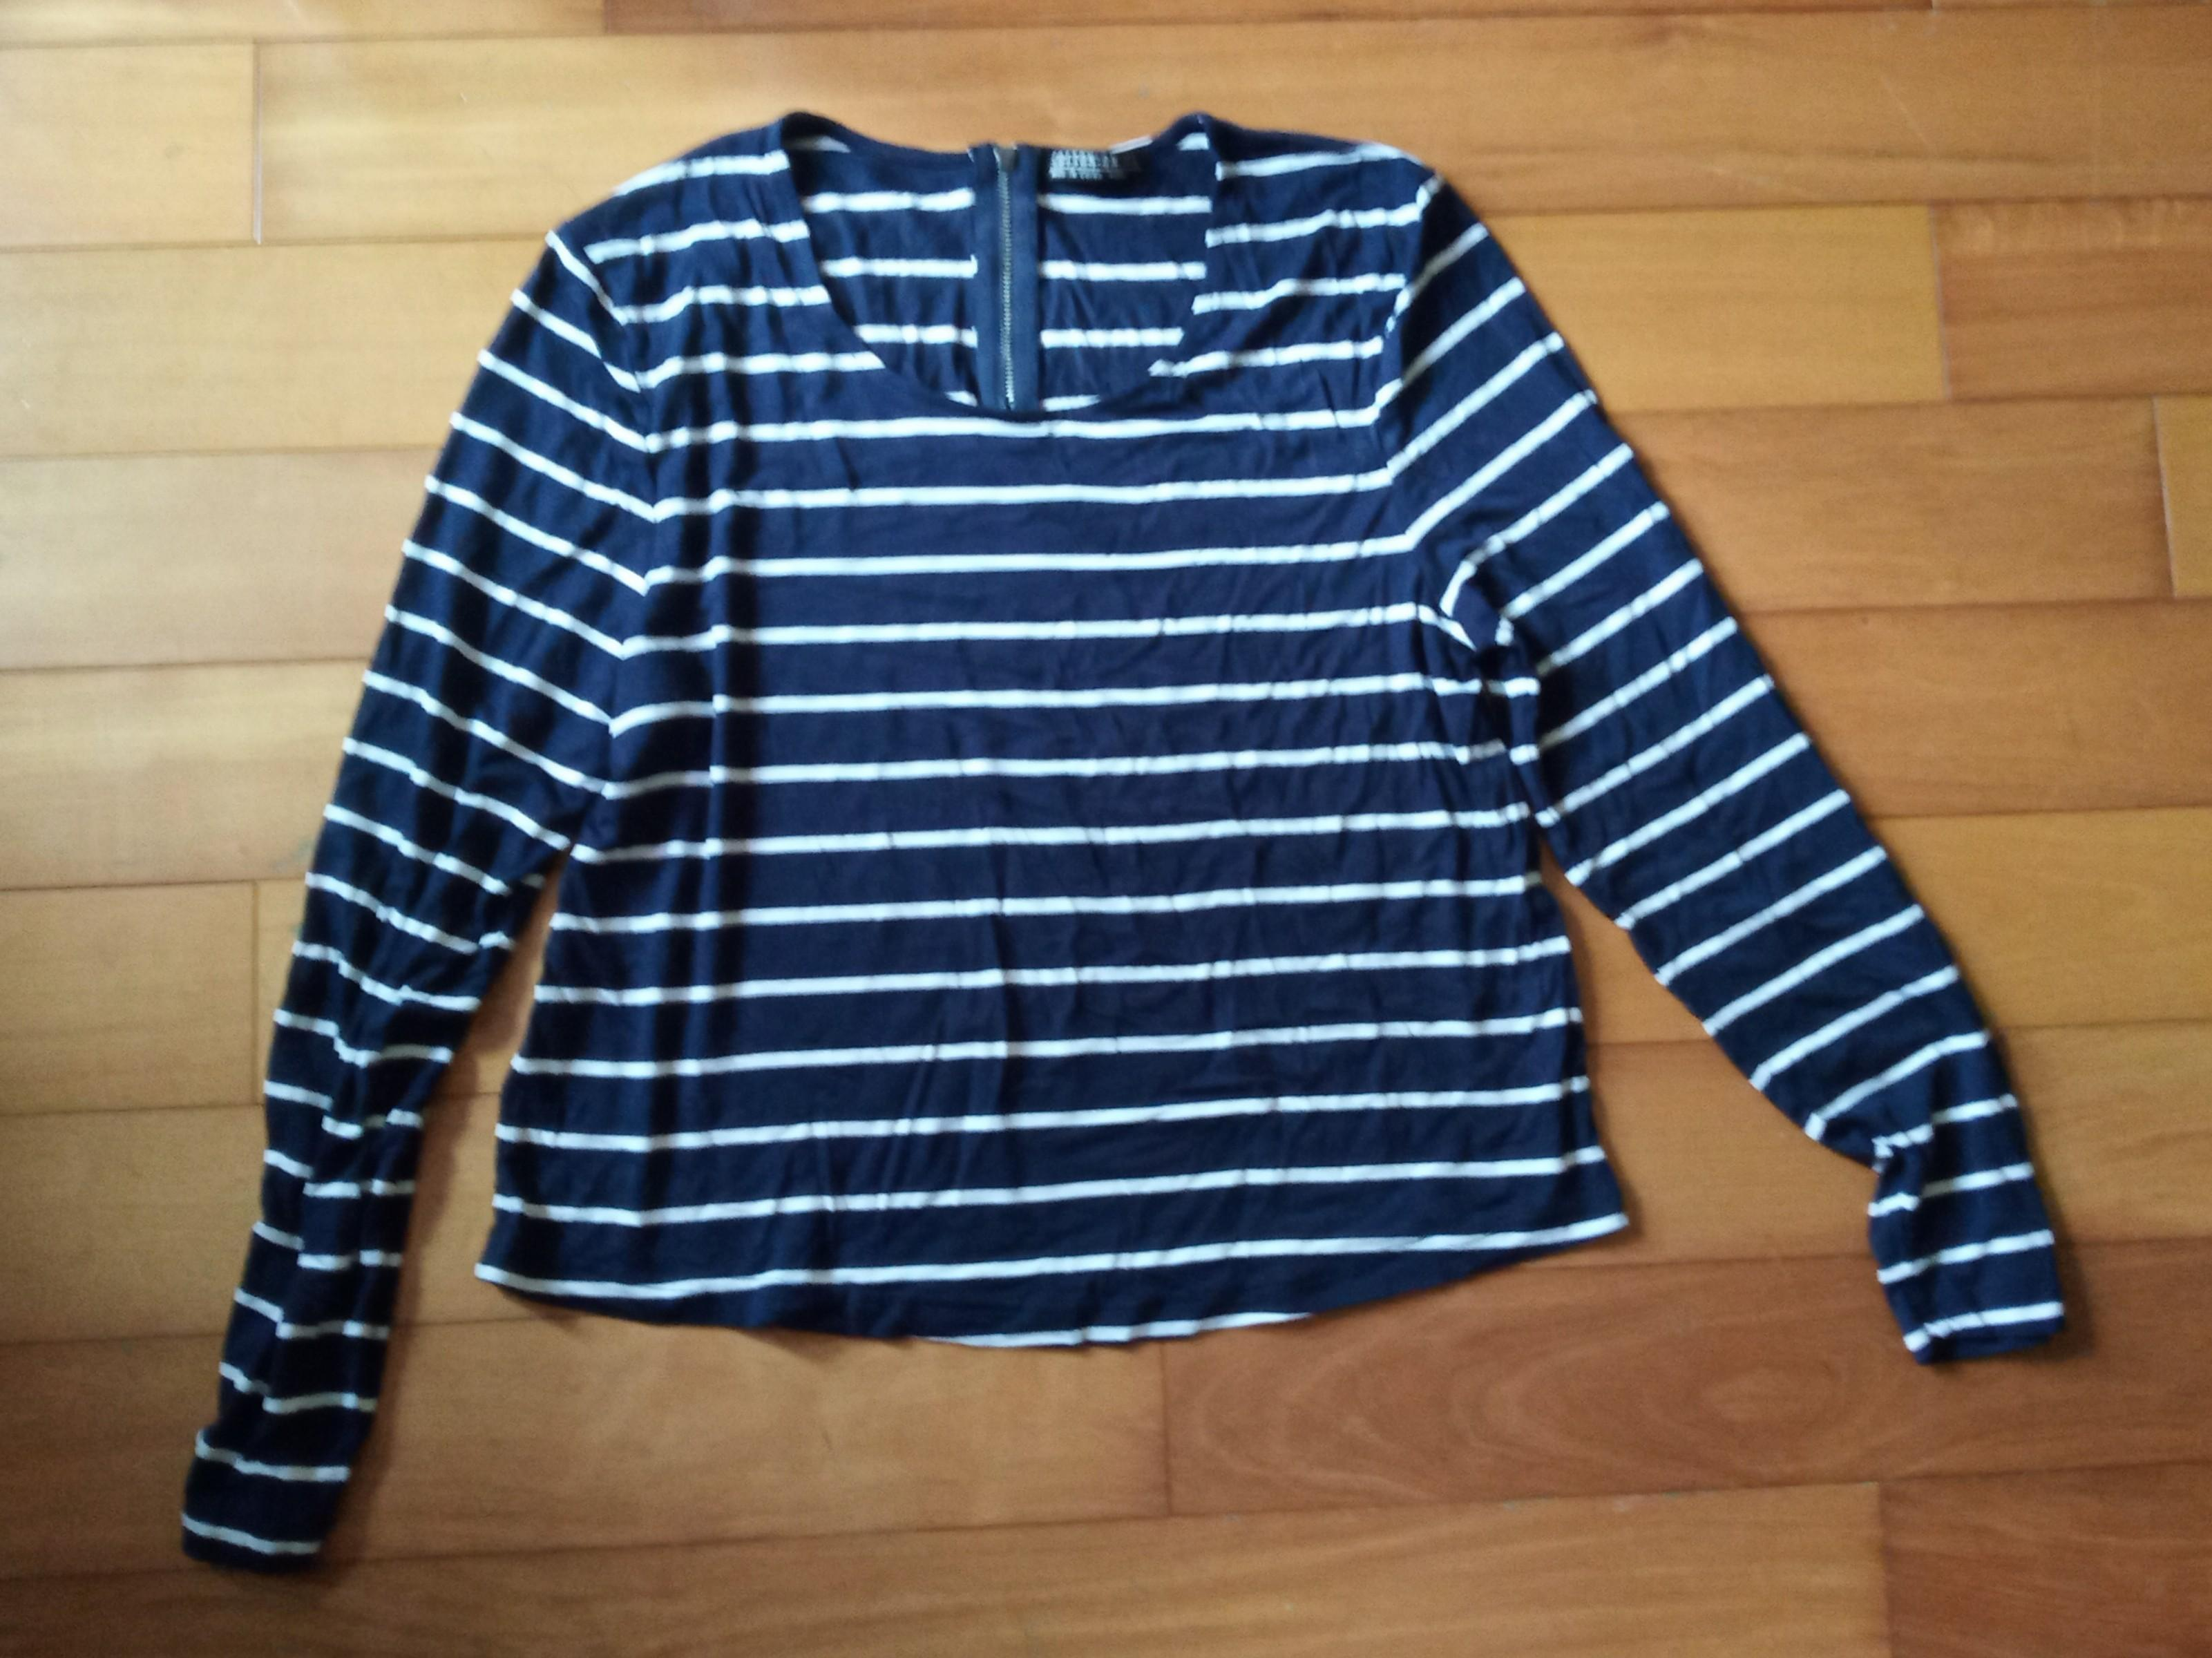 Blue and White Striped Long Sleeved Semi-cropped Top